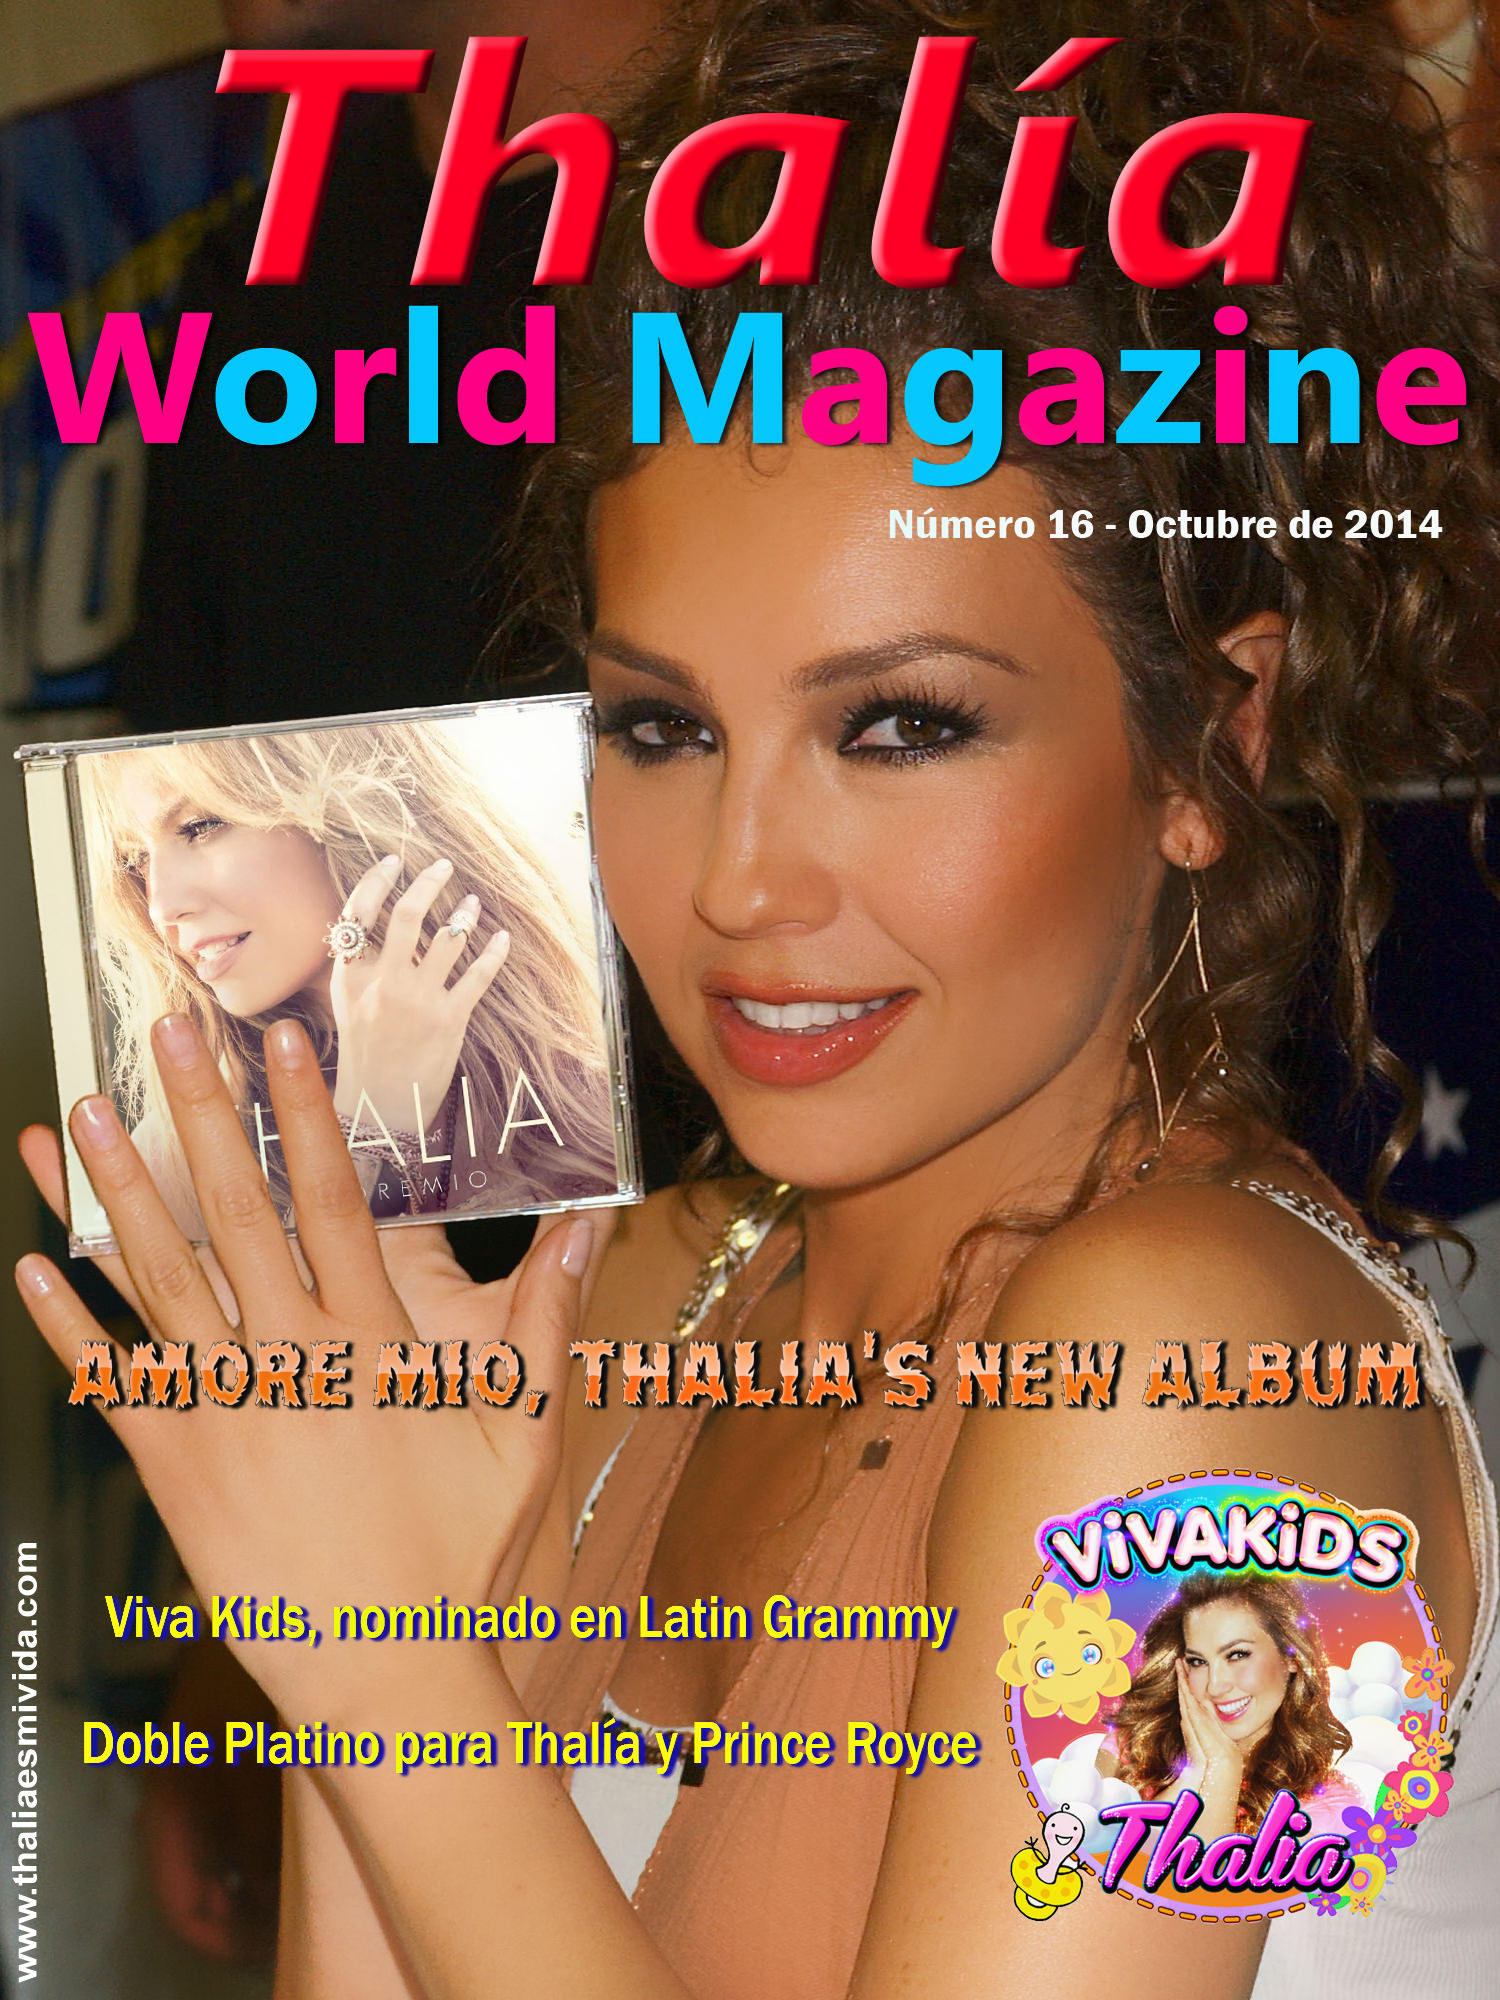 Thalia World Magazine 16